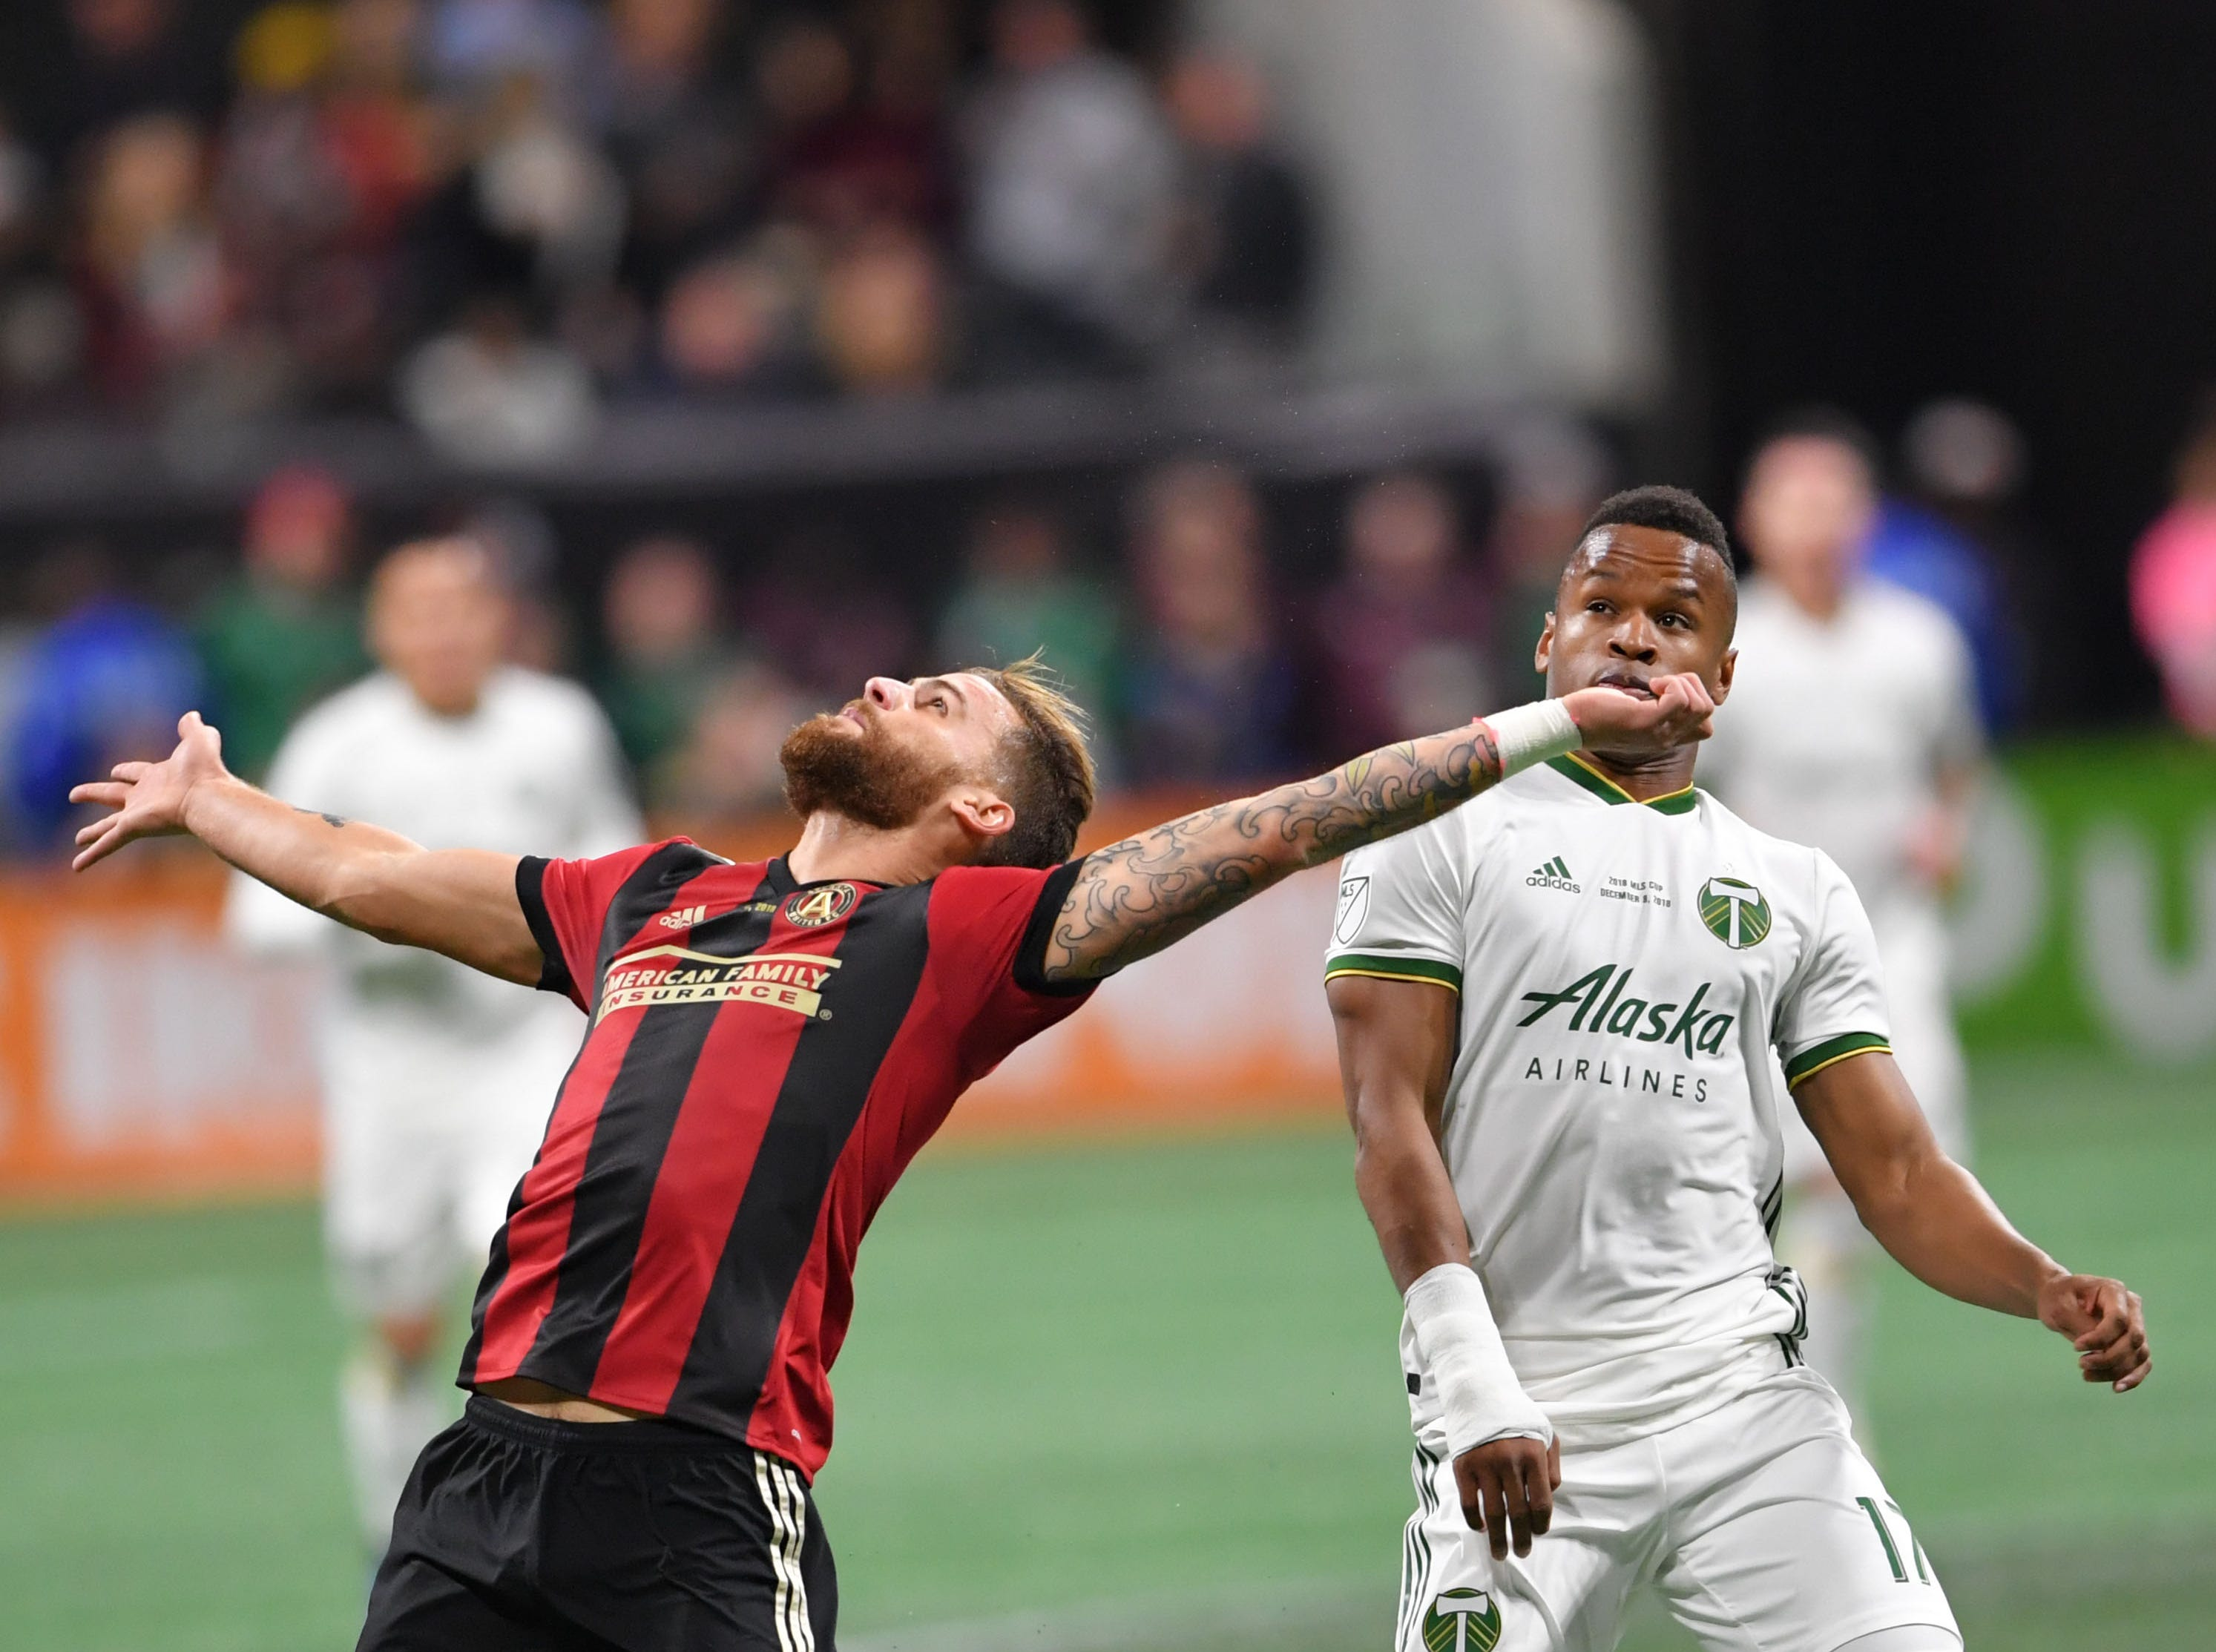 Atlanta United defender Leandro Gonzalez Pirez (5) heads the ball as Portland Timbers forward Jeremy Ebobisse (17) gives chase during the first half in the 2018 MLS Cup.